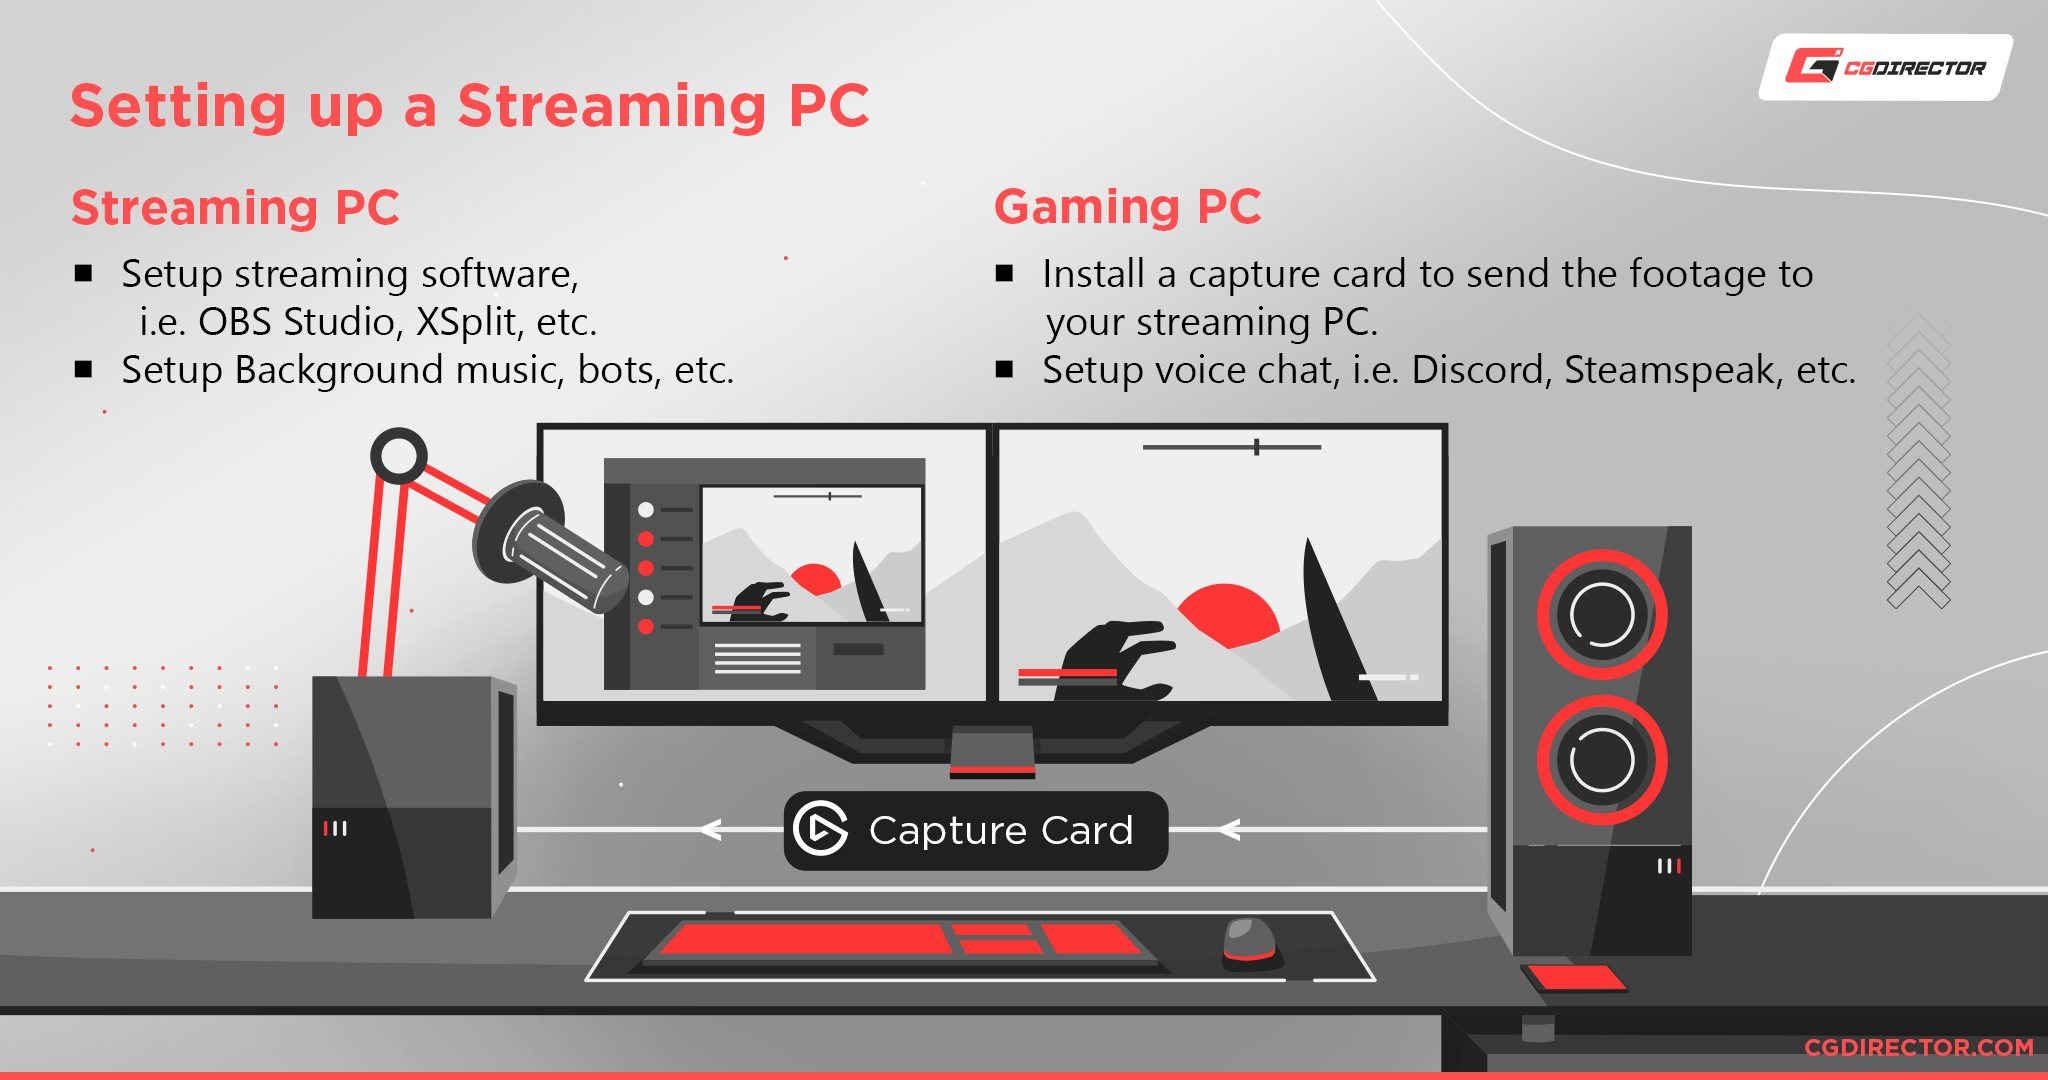 How to setup a secondary streaming PC